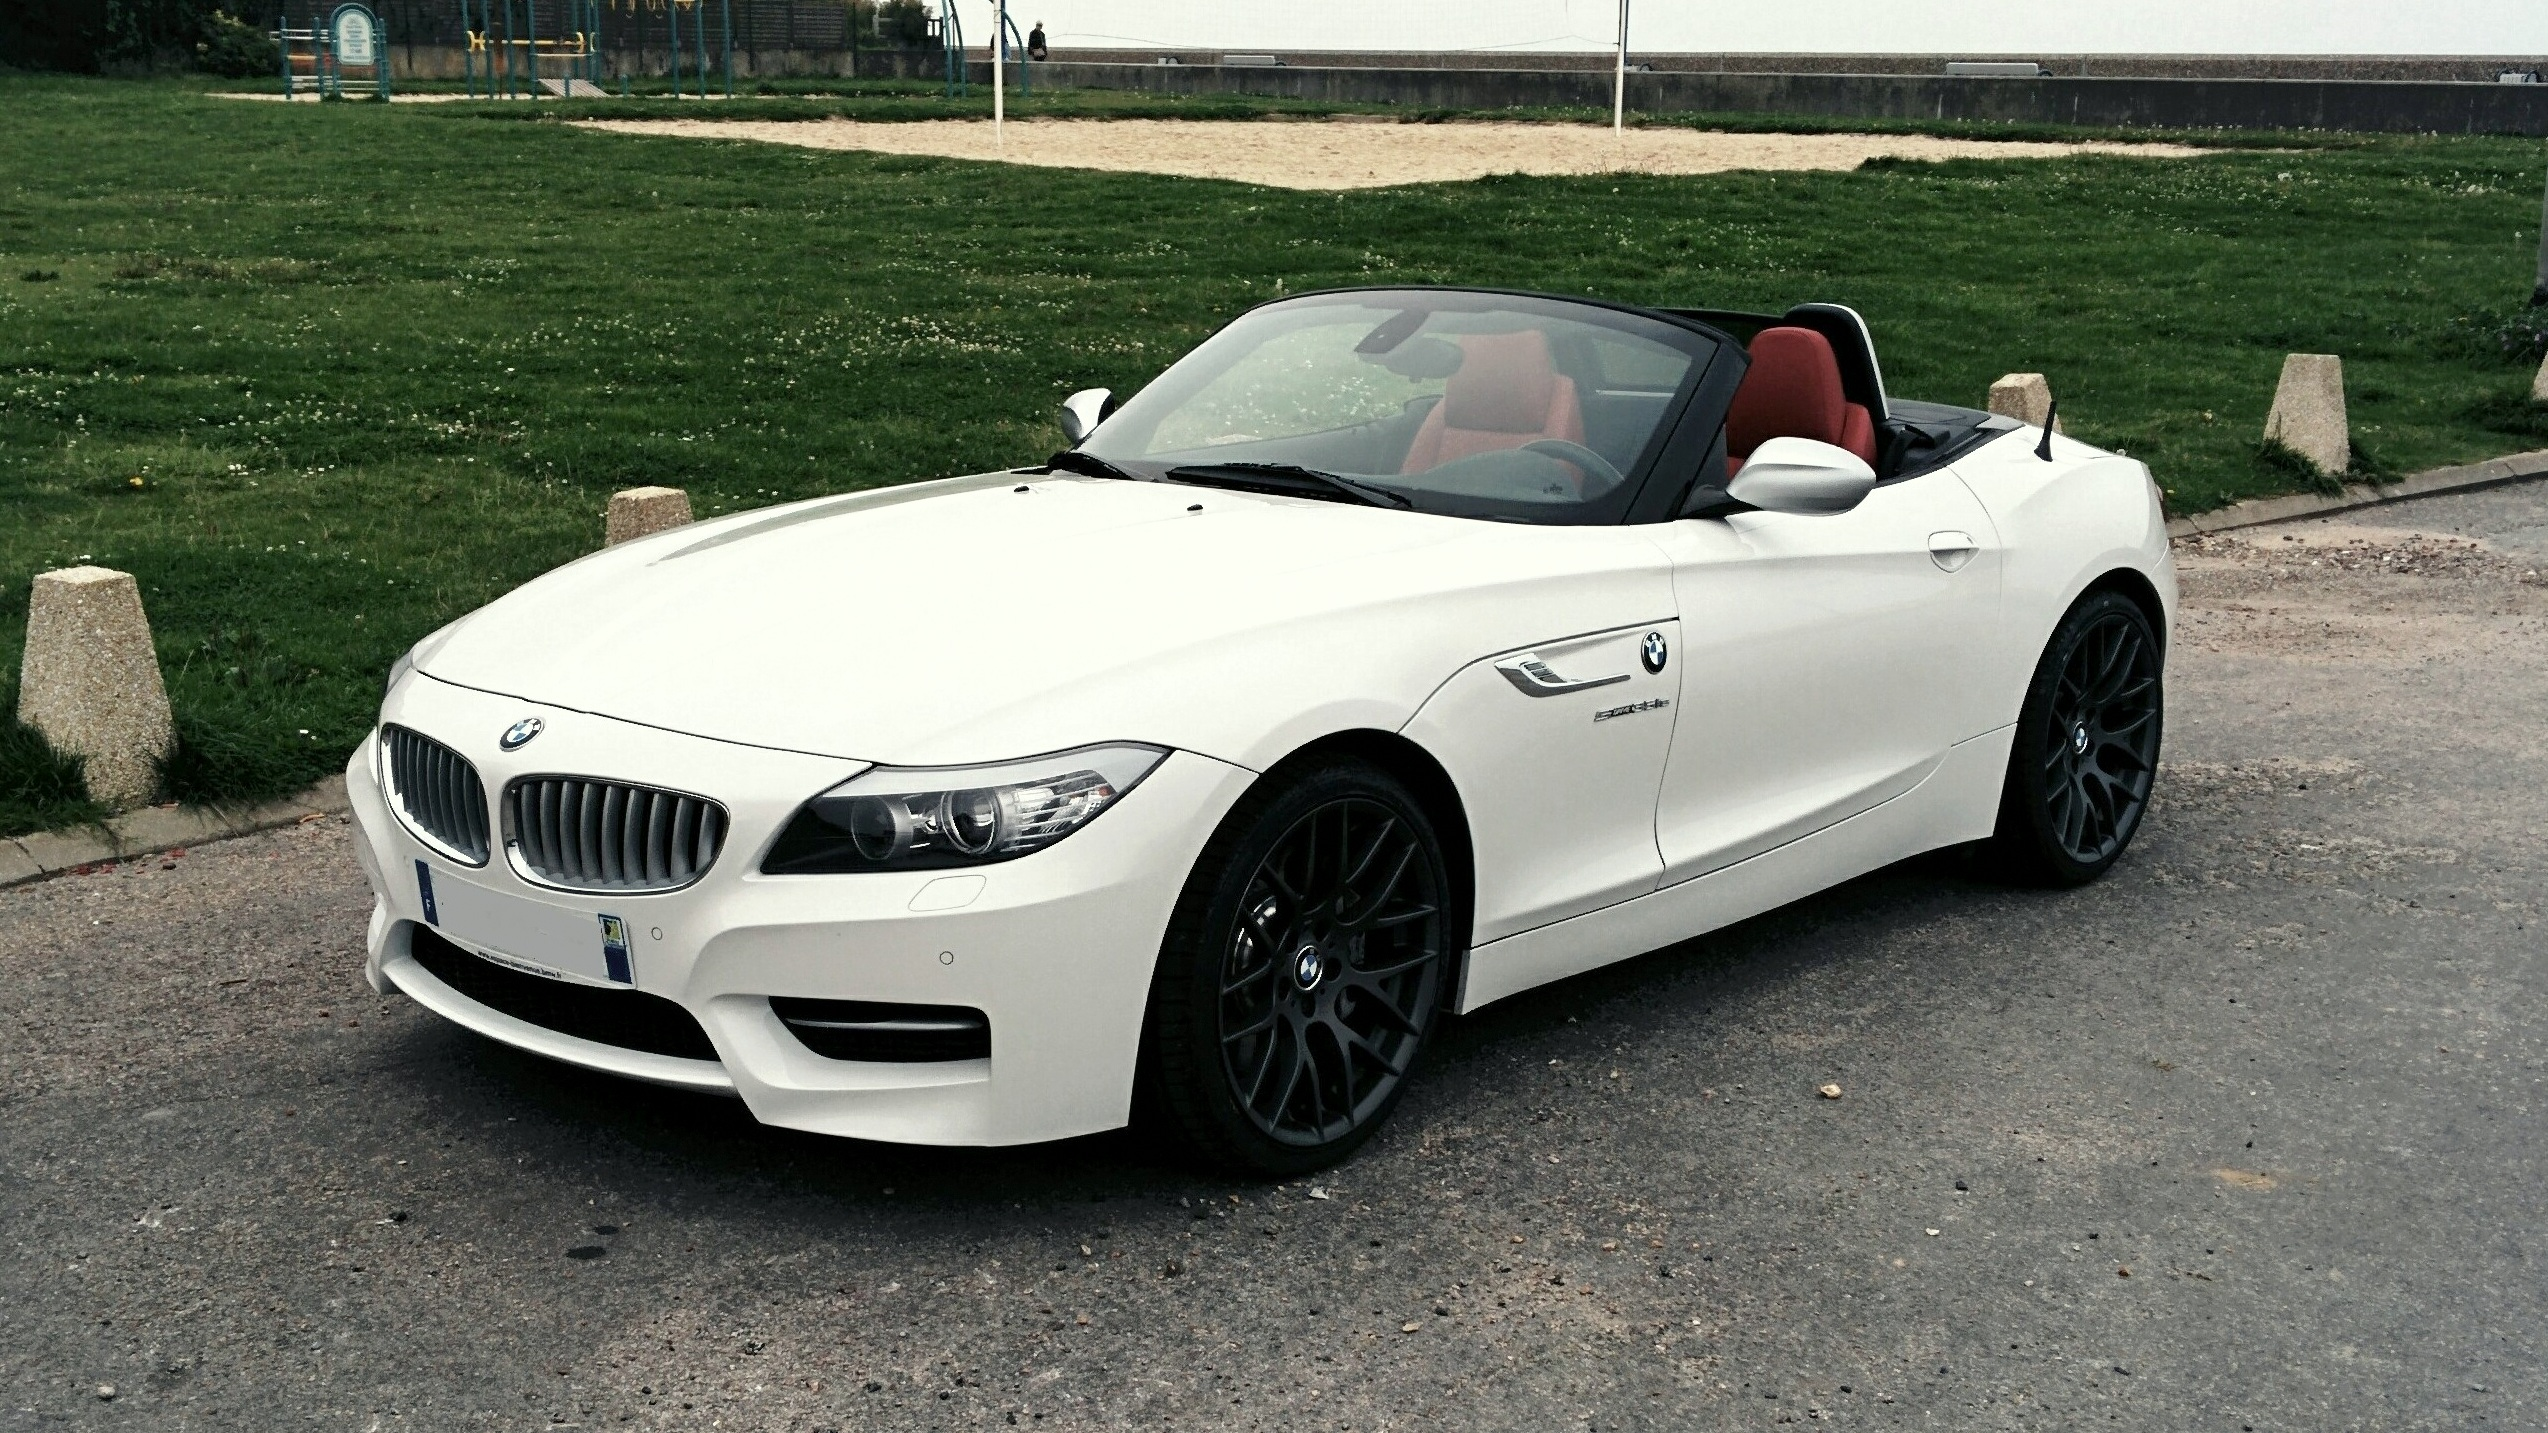 Bmw Z4 E89 Topic Officiel Page 364 Z4 Z4m Bmw